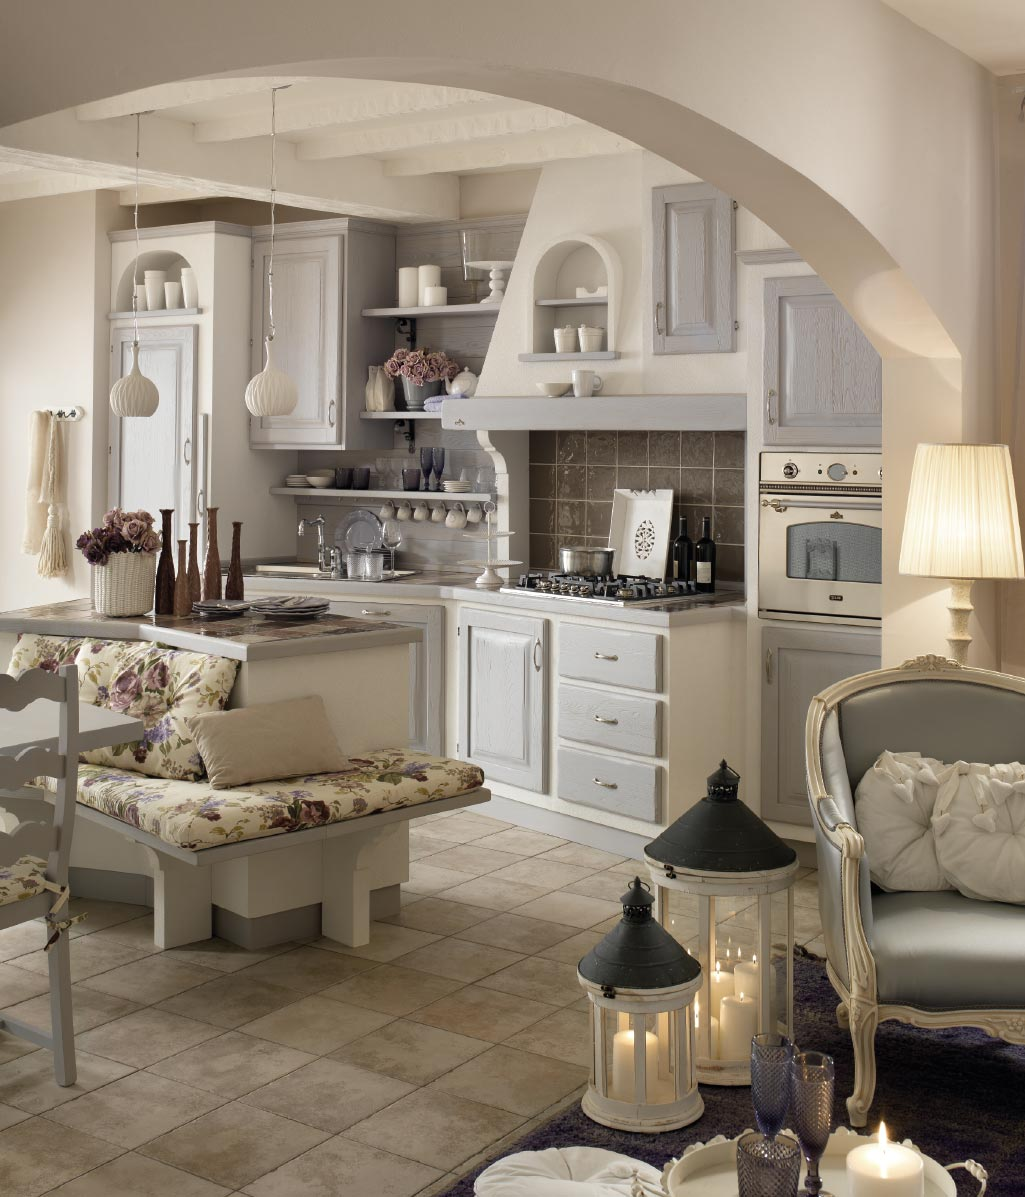 Marchi cucine country beautiful marchi cucine country with marchi cucine country beautiful - Foto cucine country ...